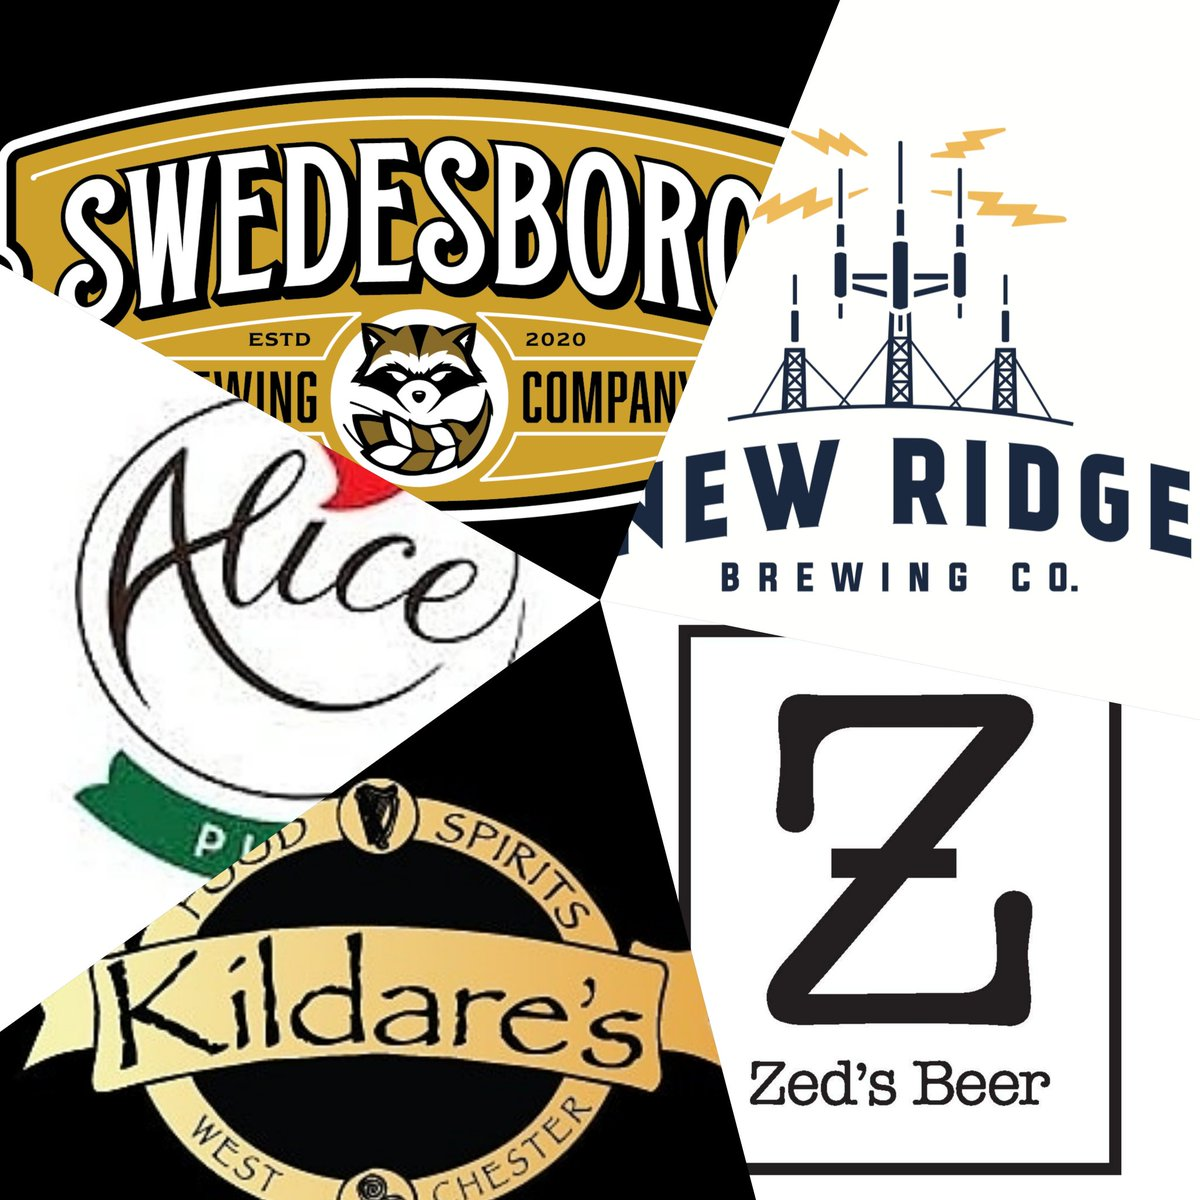 Tomorrow night, the @PhilaUnion take on Minnesota! If you are looking for a spot to watch the game, check out one of these great places! 🔹️ @SwedesboroBeer 🔹️ @NewRidgeBrewing 🔹️ @AlicePhilly 🔹️ @KildaresPubWC 🔹️ @drinkzeds Kick off is at 8:00pm!